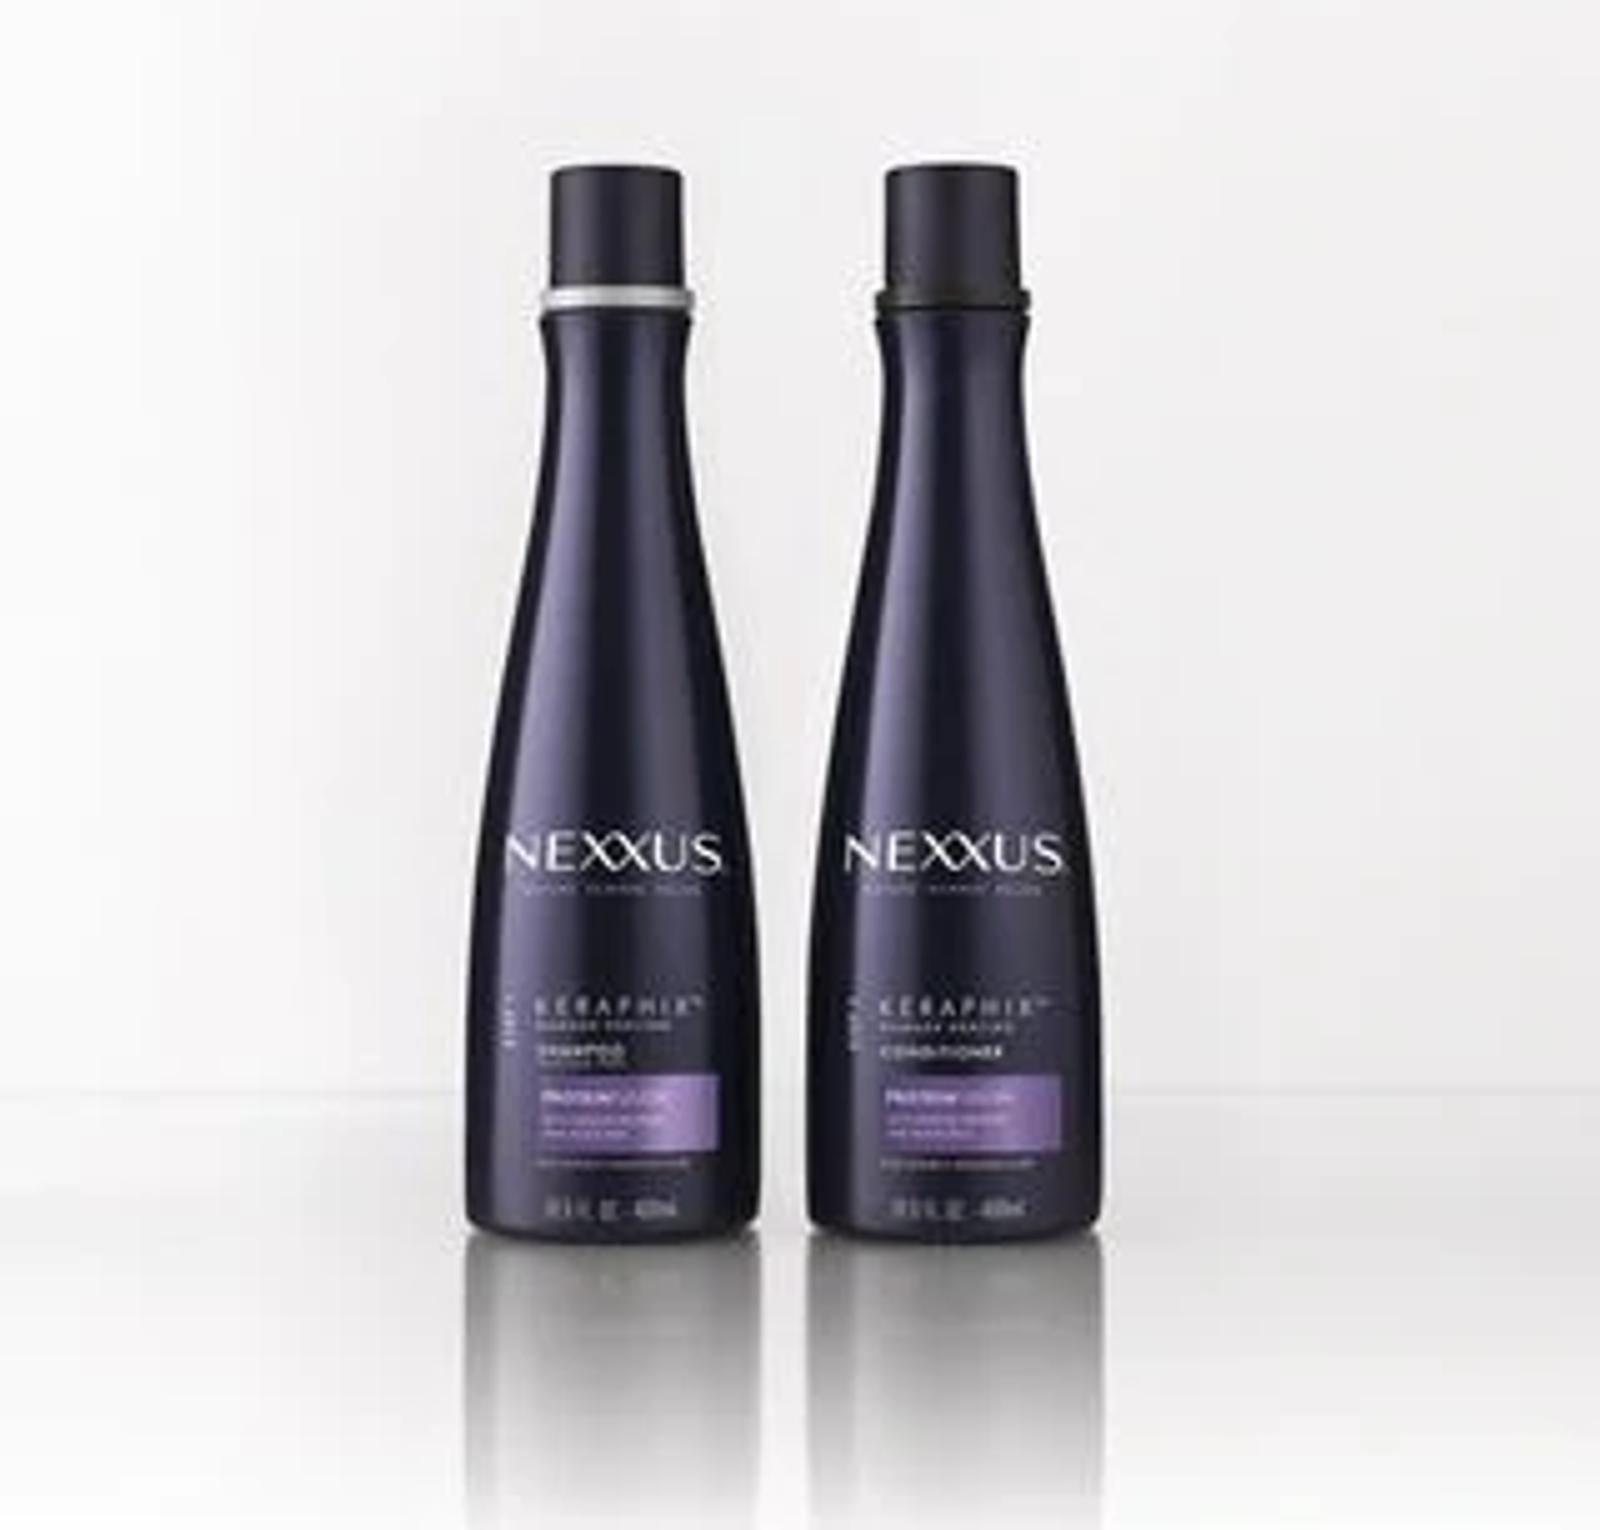 Image of Keraphix Shampoo and Conditioner Product Set